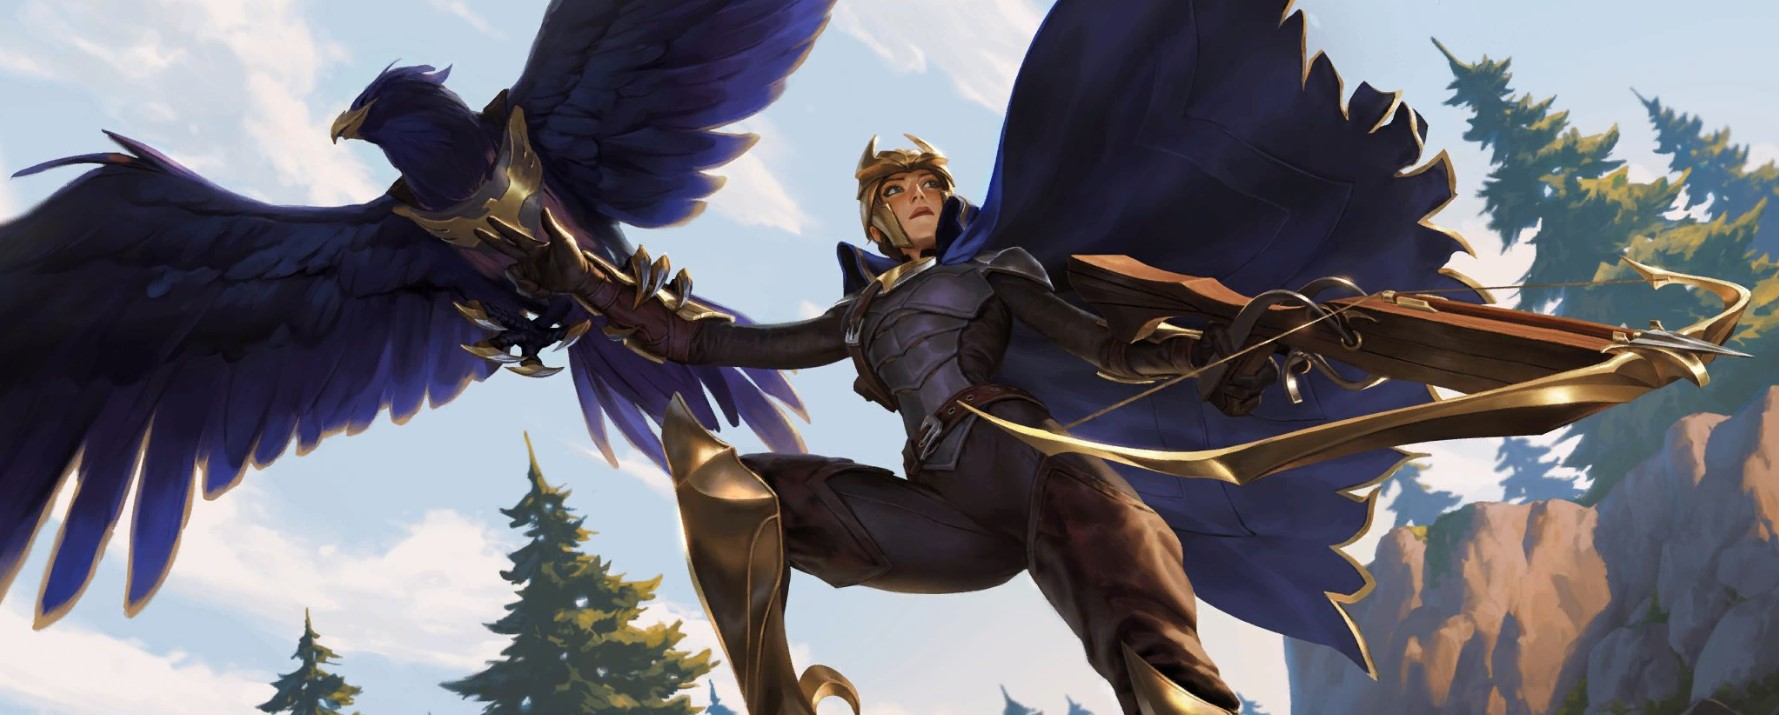 New Legends of Runeterra Card Impressions: Quinn, Scout, and More